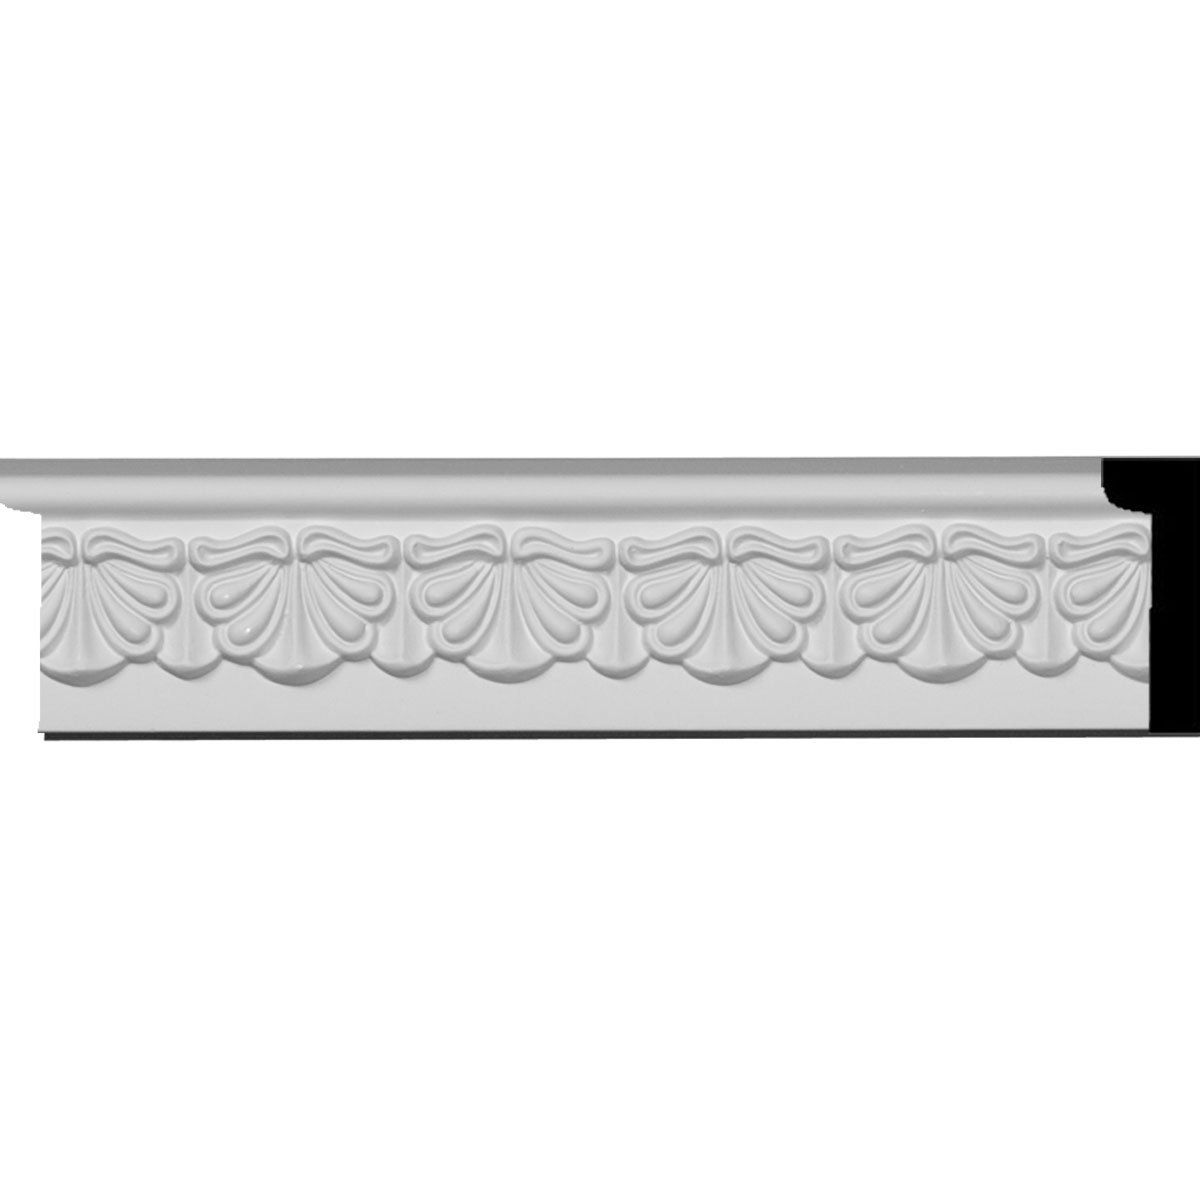 Ekena Millwork Legacy 5 5 In X 8 Ft Primed Polyurethane Connector Wall Panel Moulding Pml04x00le Wall Panel Molding Panel Moulding Wall Paneling